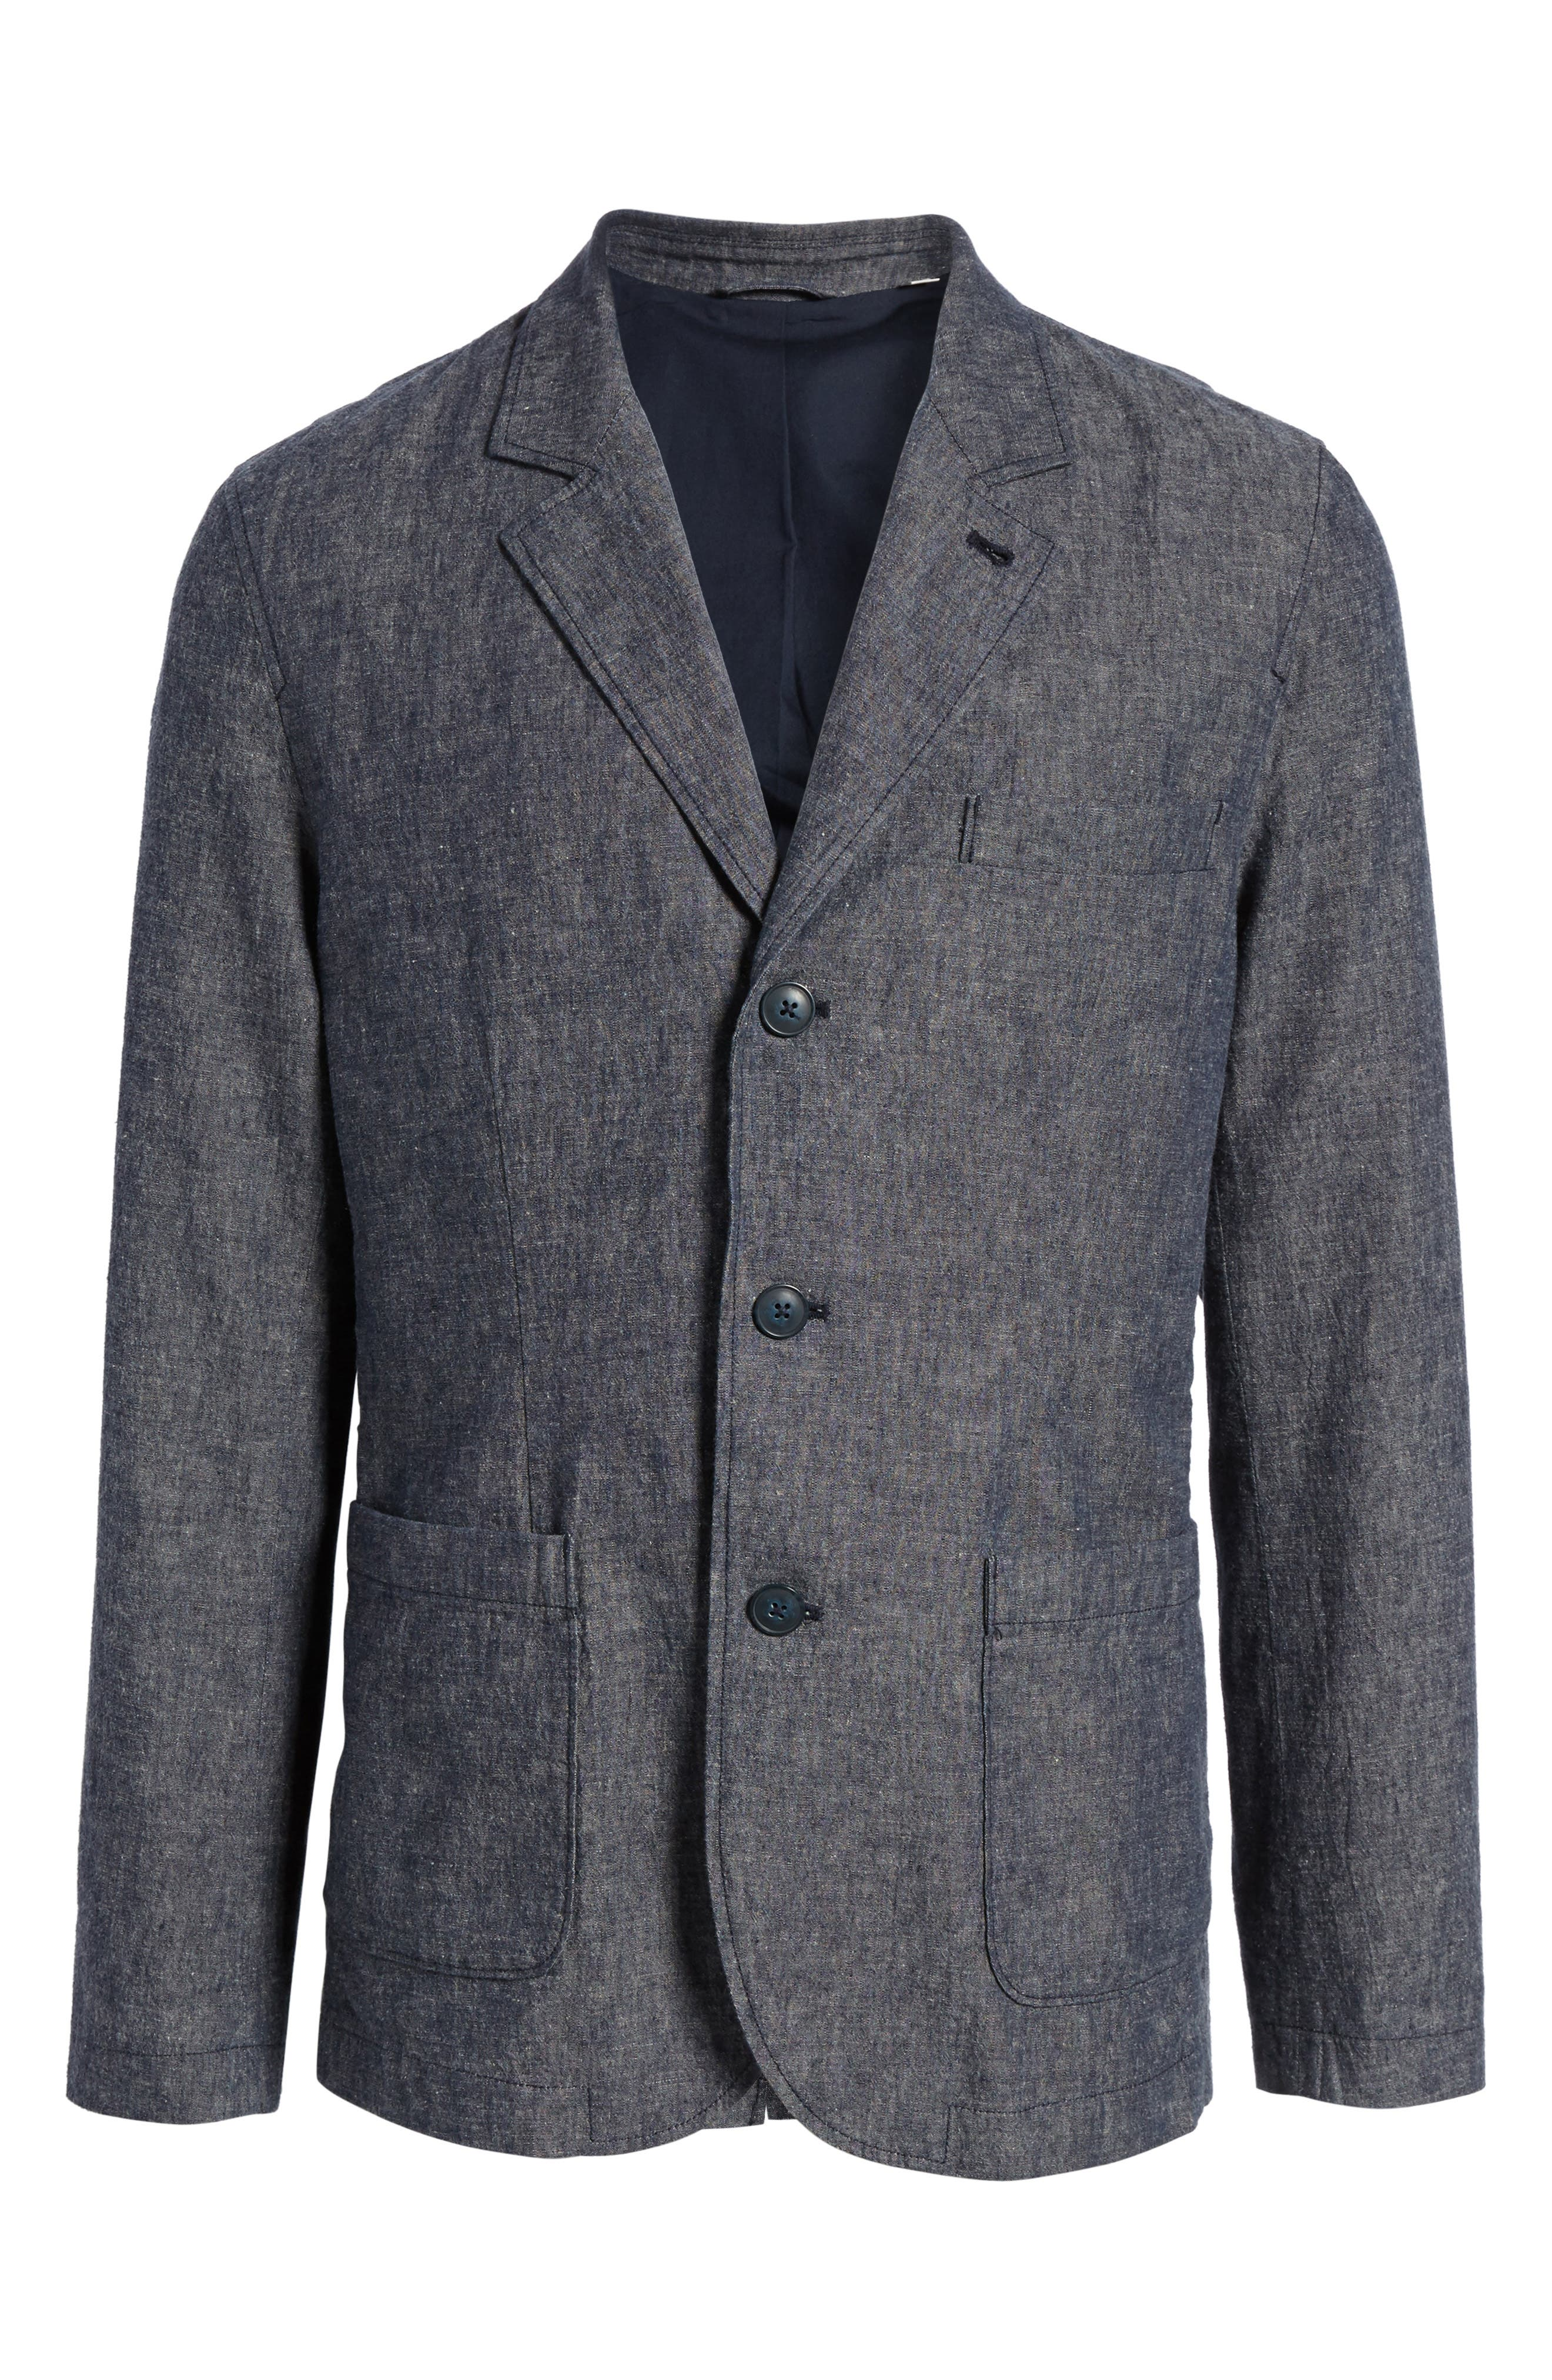 Trunnel Slim Fit Linen Blend Blazer,                             Alternate thumbnail 5, color,                             485